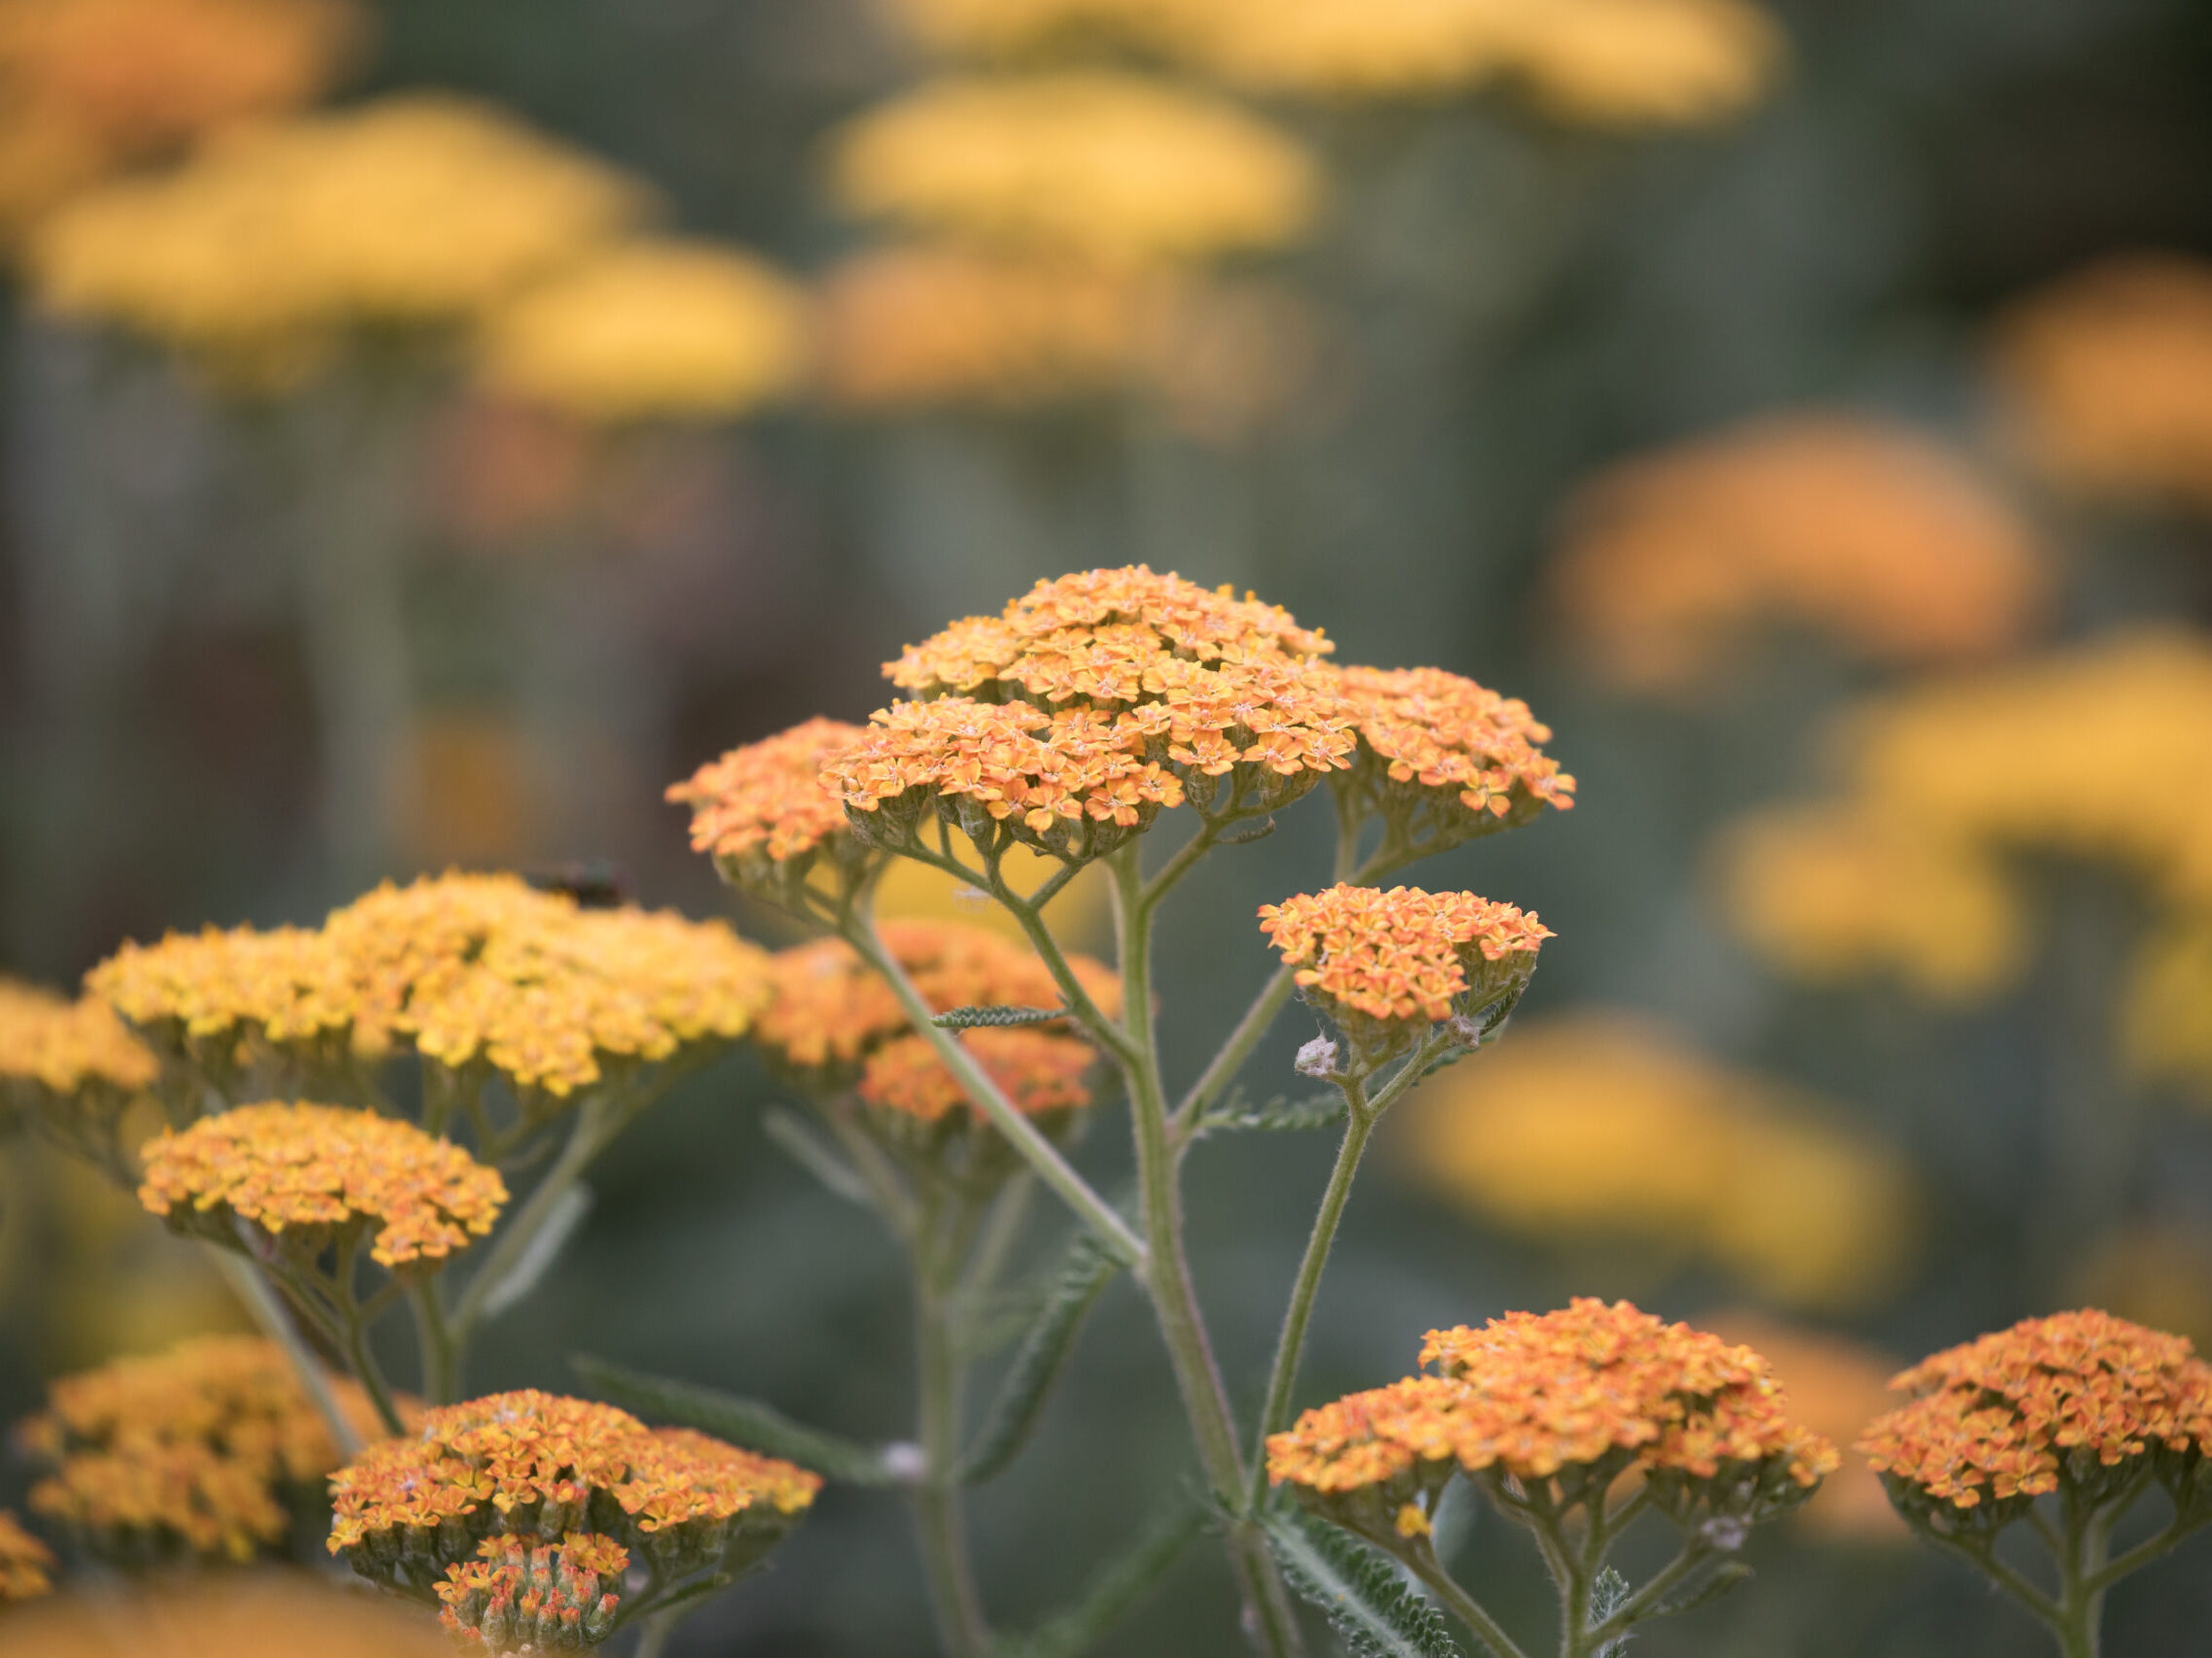 Orange achillea flowers